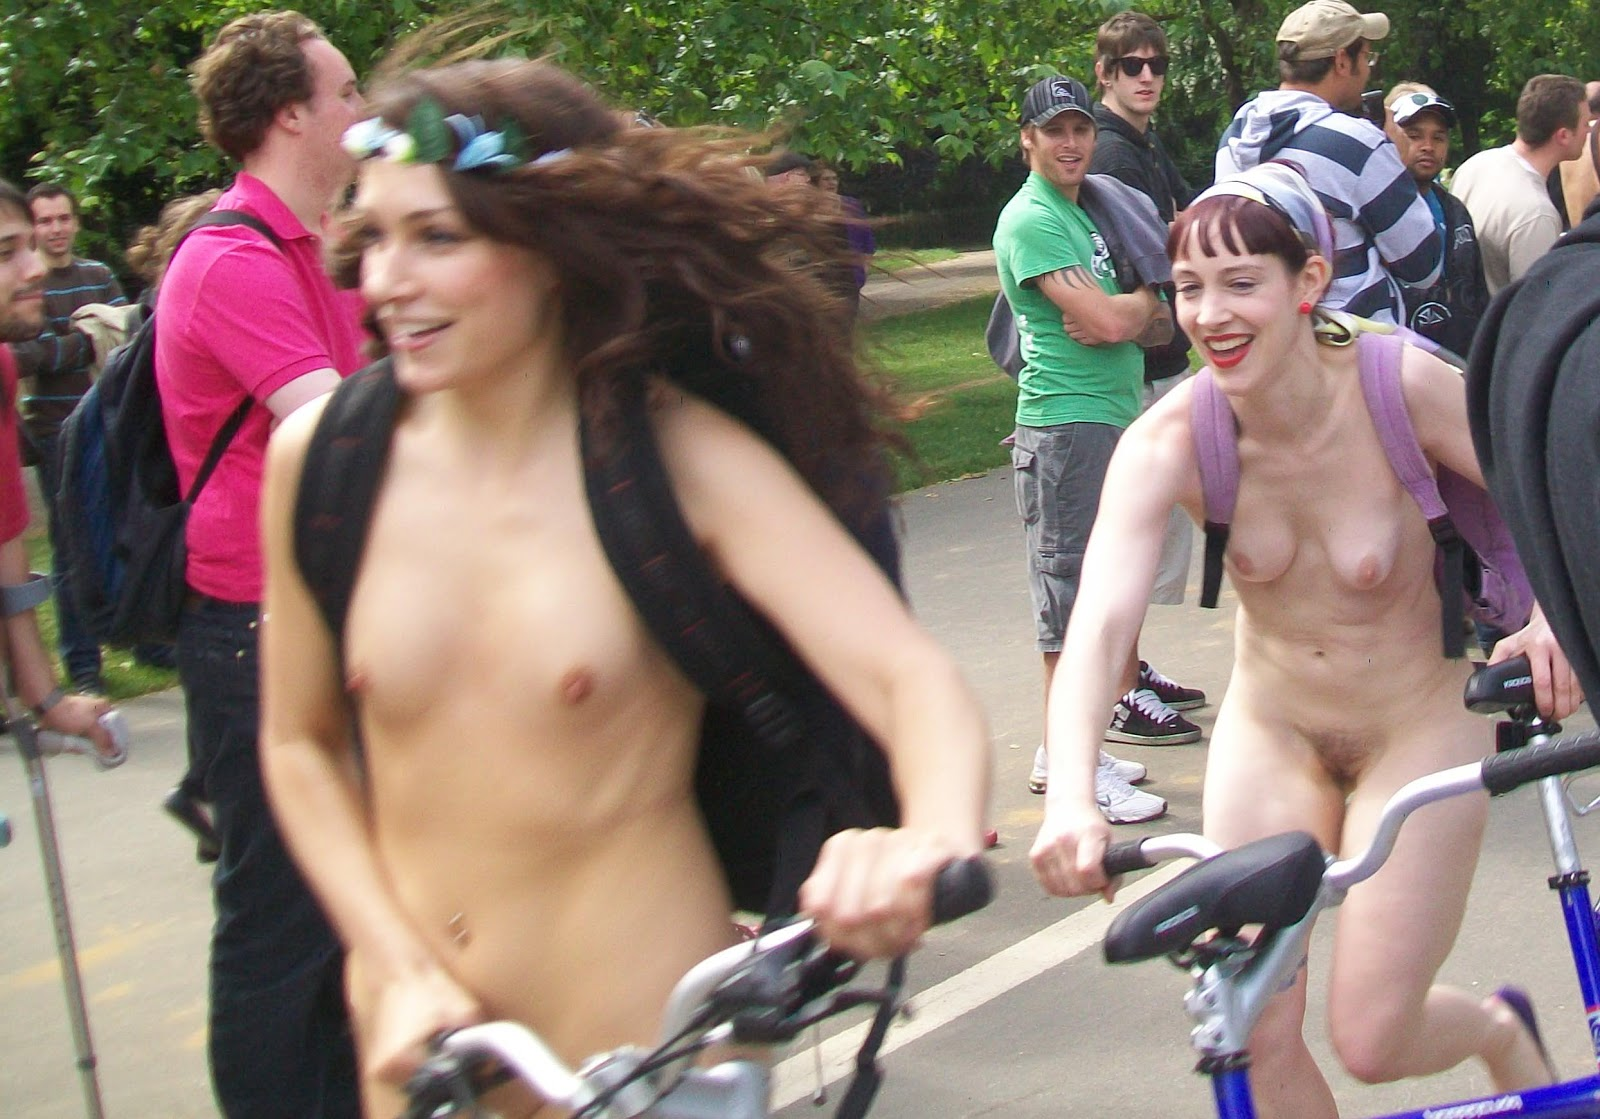 Cycling Pussy Naked Nude London Bicycle - Full Movie-1193